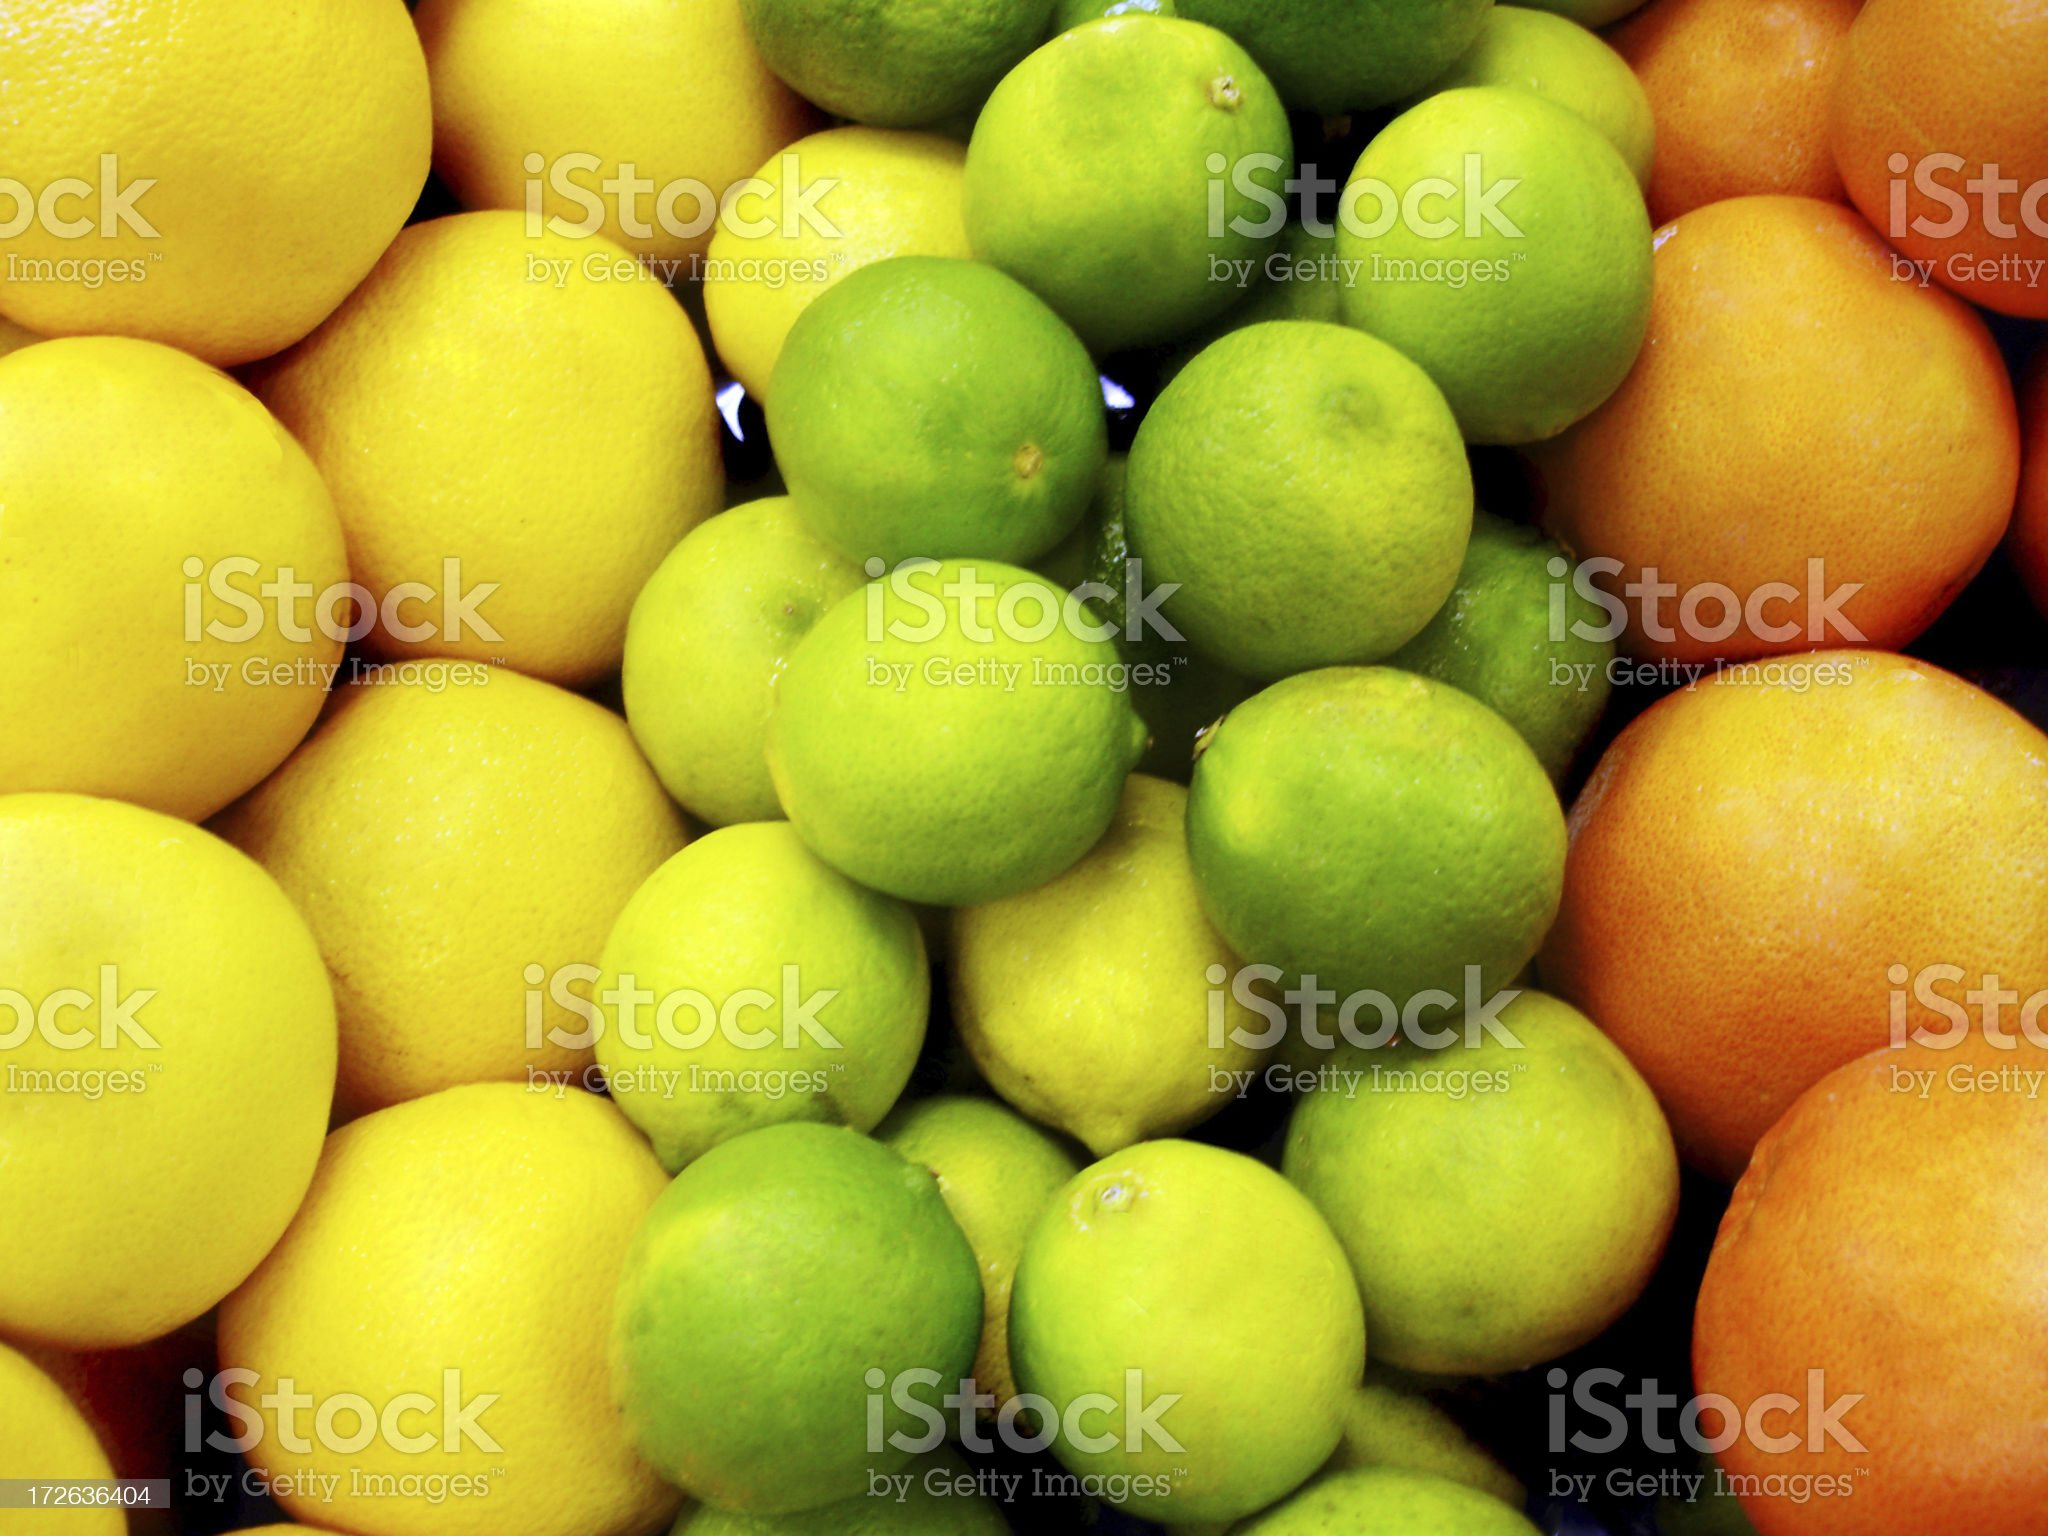 Lemons and Oranges royalty-free stock photo